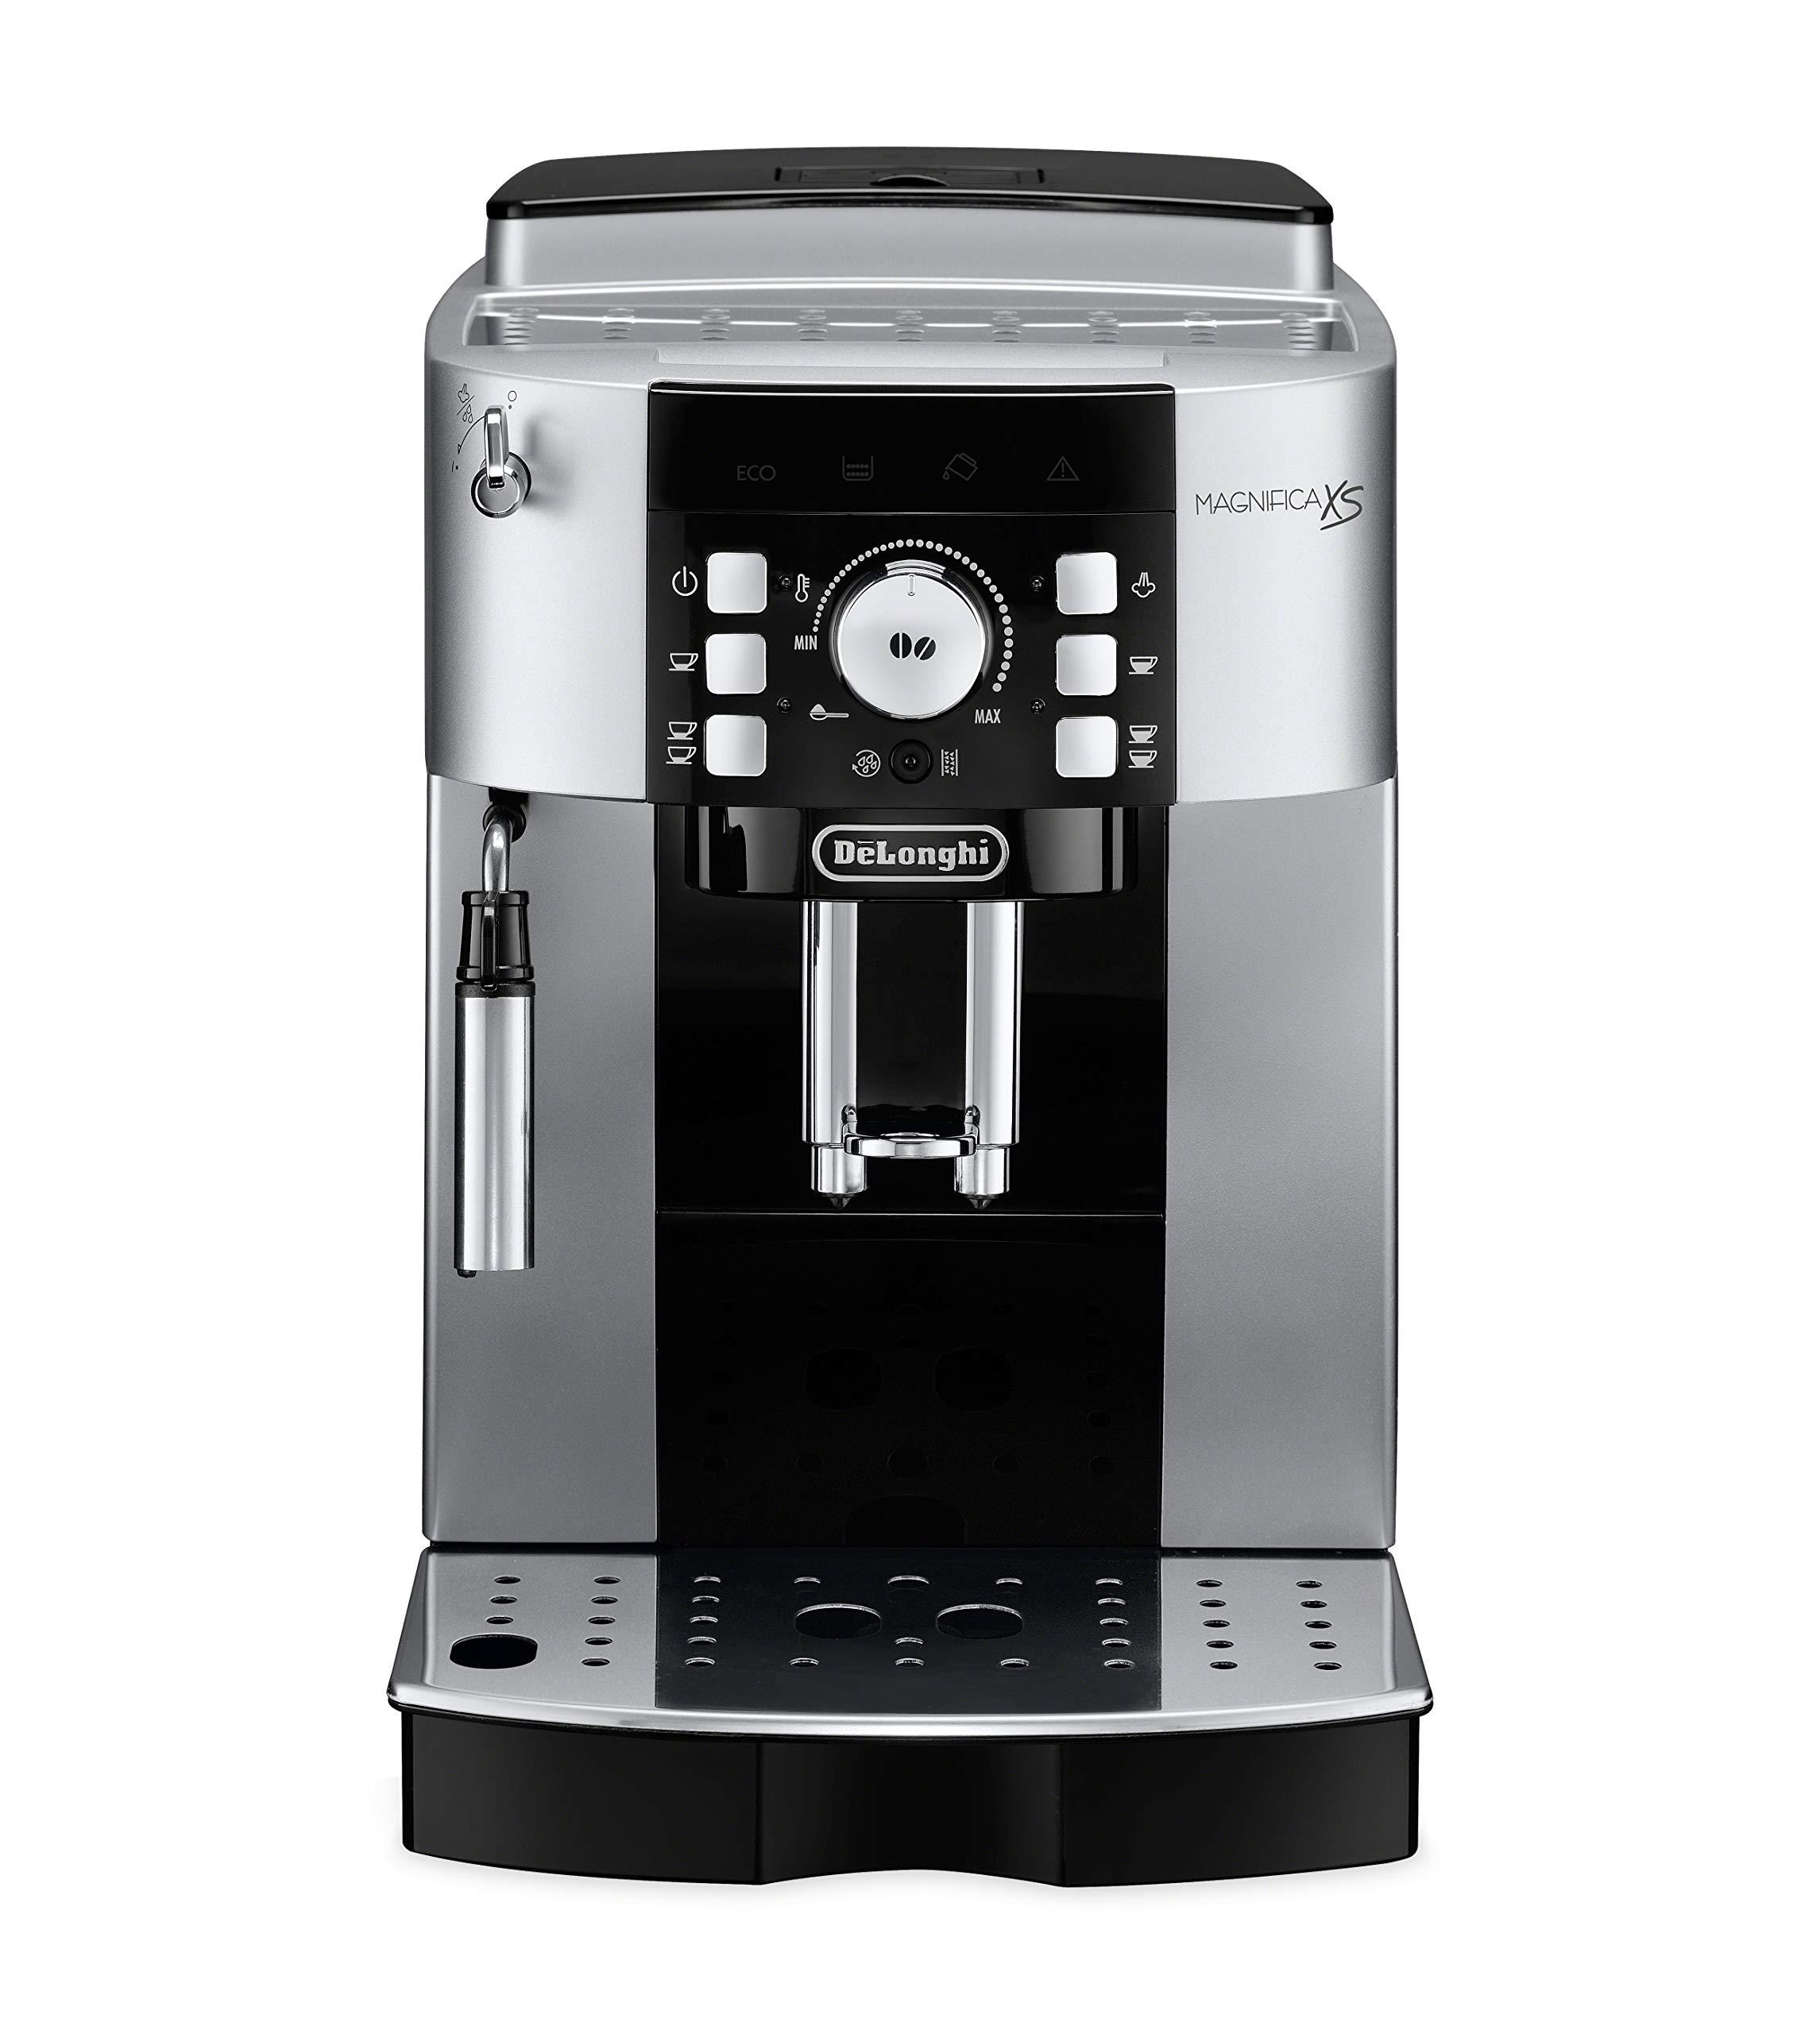 De'Longhi ECAM22110S Magnifica XS Fully Automatic Espresso Machine with Manual Cappuccino System, SILVER AND BLACK by De'Longhi